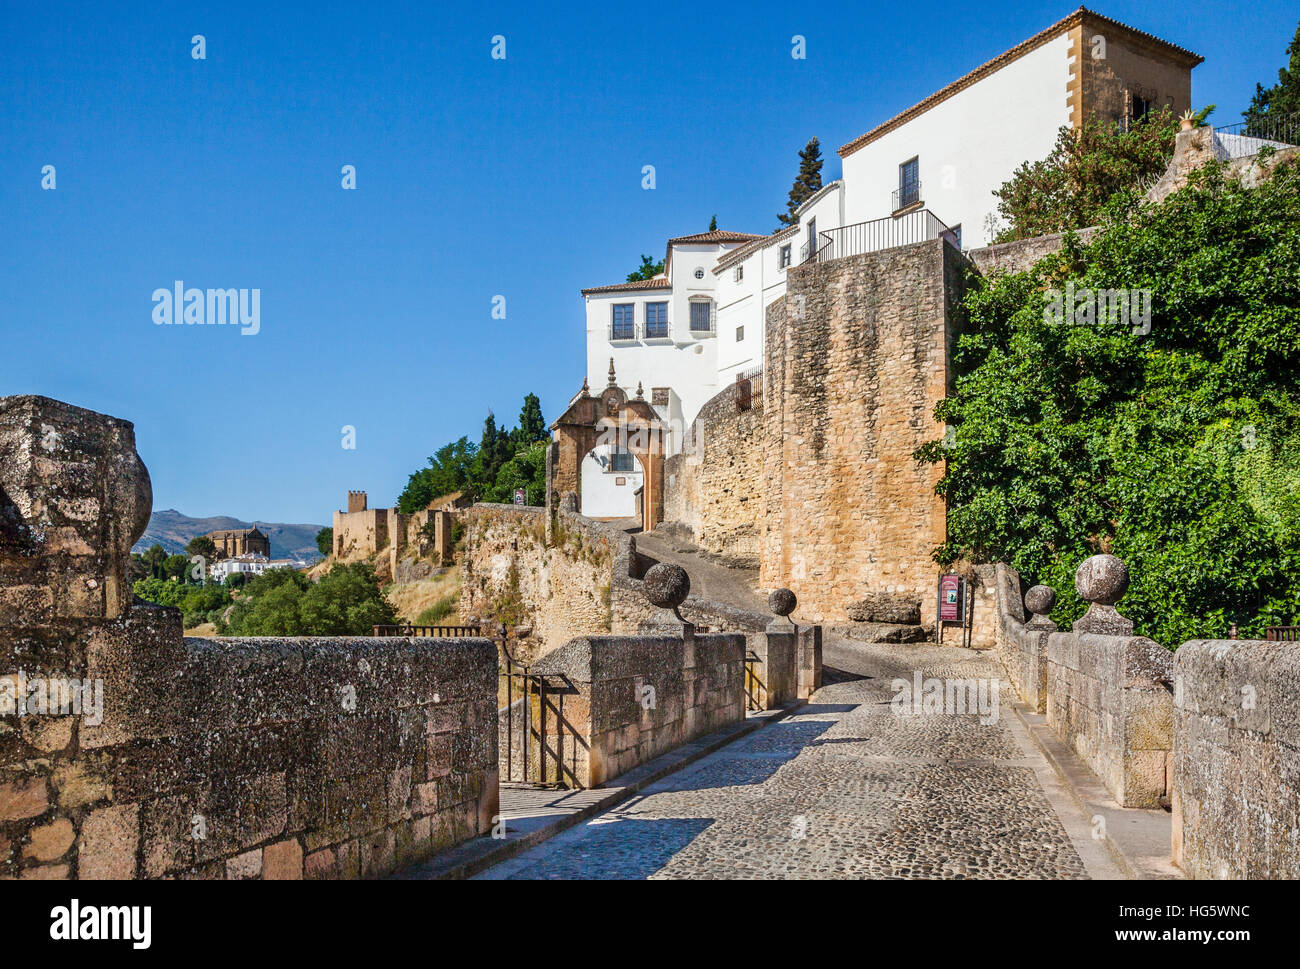 Spain, Andalusia, Province of Malaga, Ronda, Archway of Philip V (Arco de Filipe V/Puerta Filipe V) seen from Puente - Stock Image